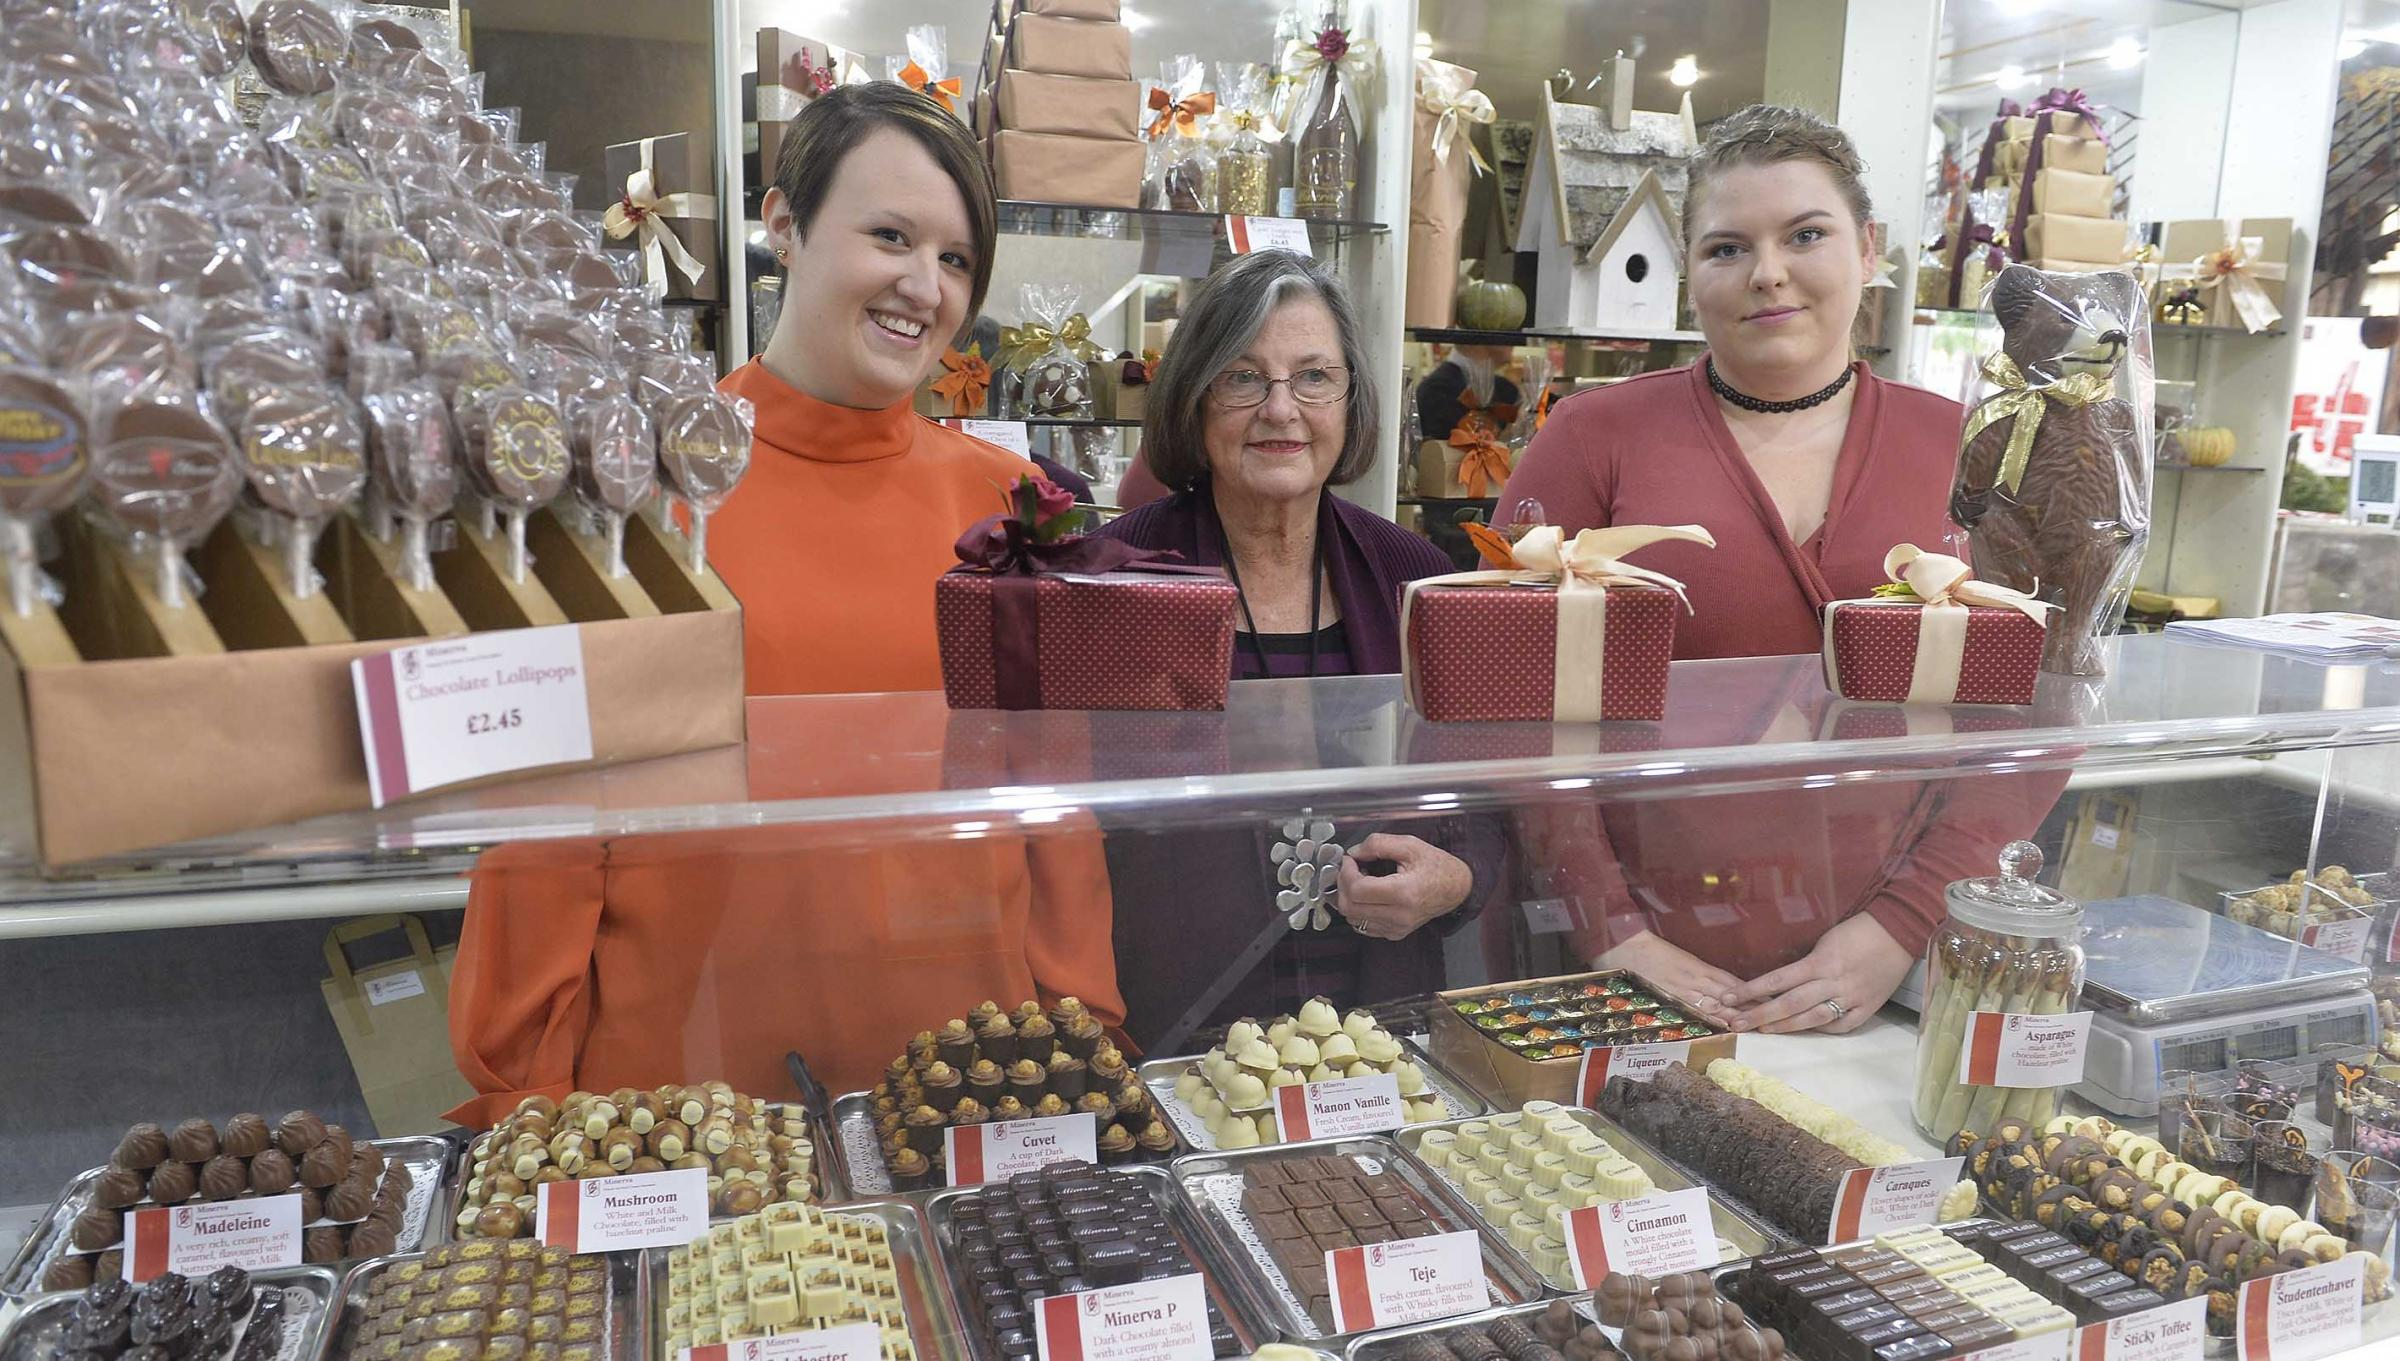 Dedicated - Nadine Humphreys, Madeleine Johnson and Ellie Bell from Minerva Chocolates at a 30th anniversary celebration